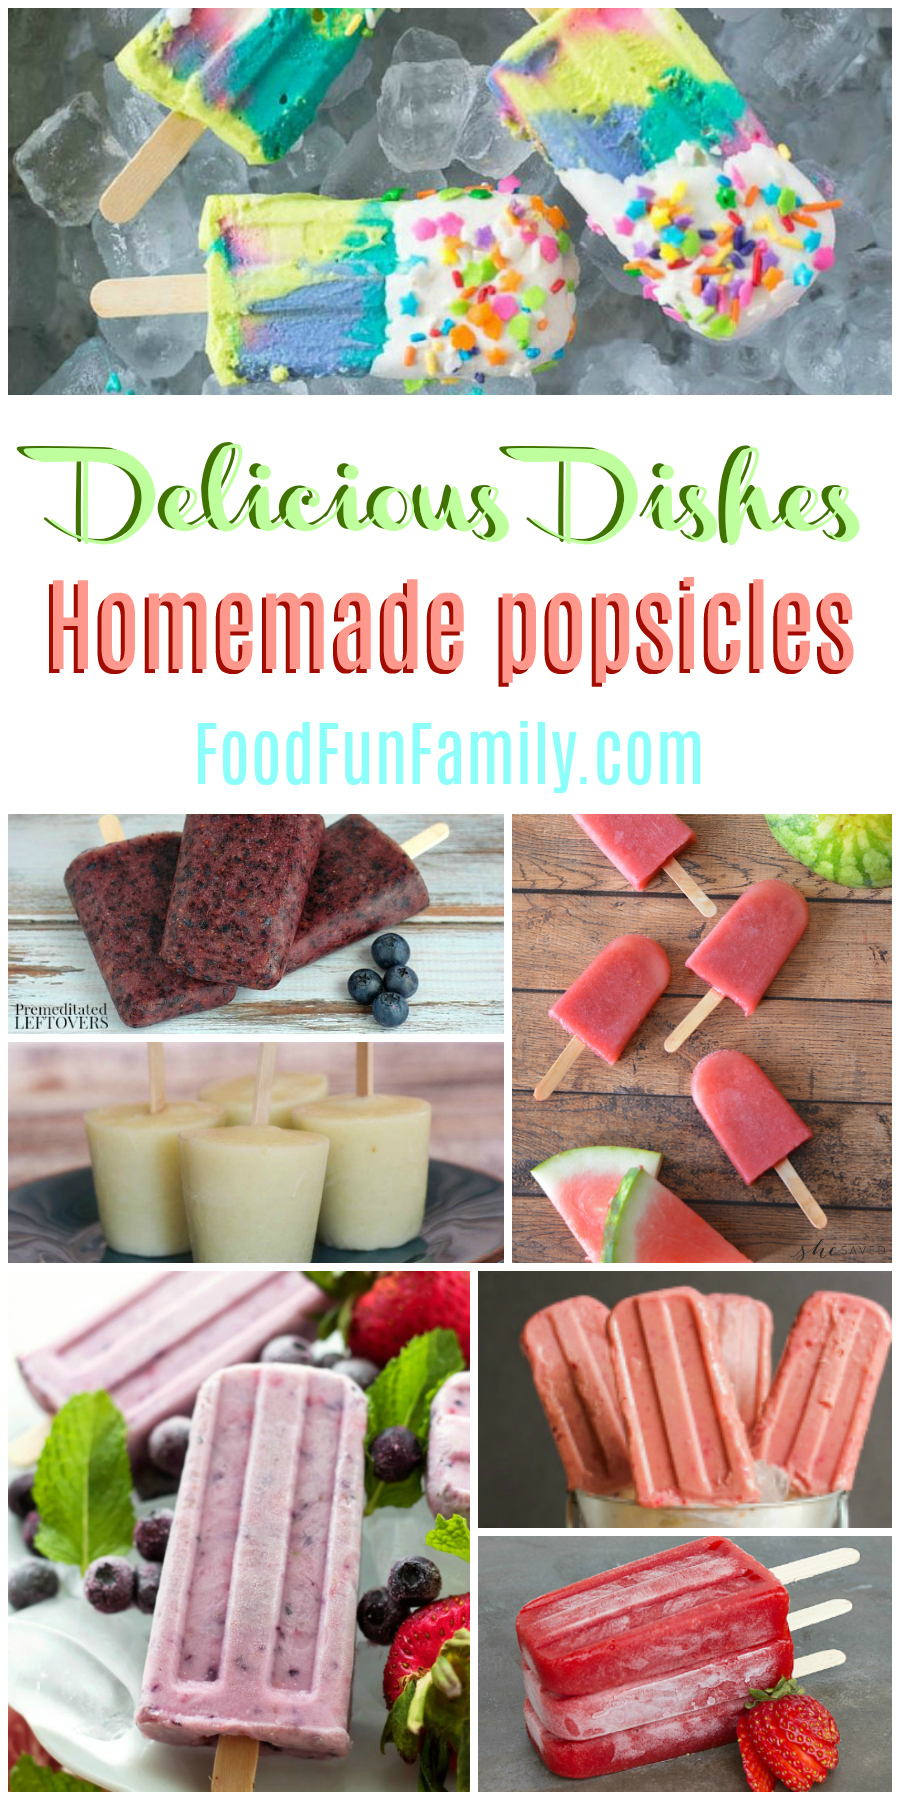 Homemade popsicles - the perfect summer treat! A Delicious Dishes recipe party collection